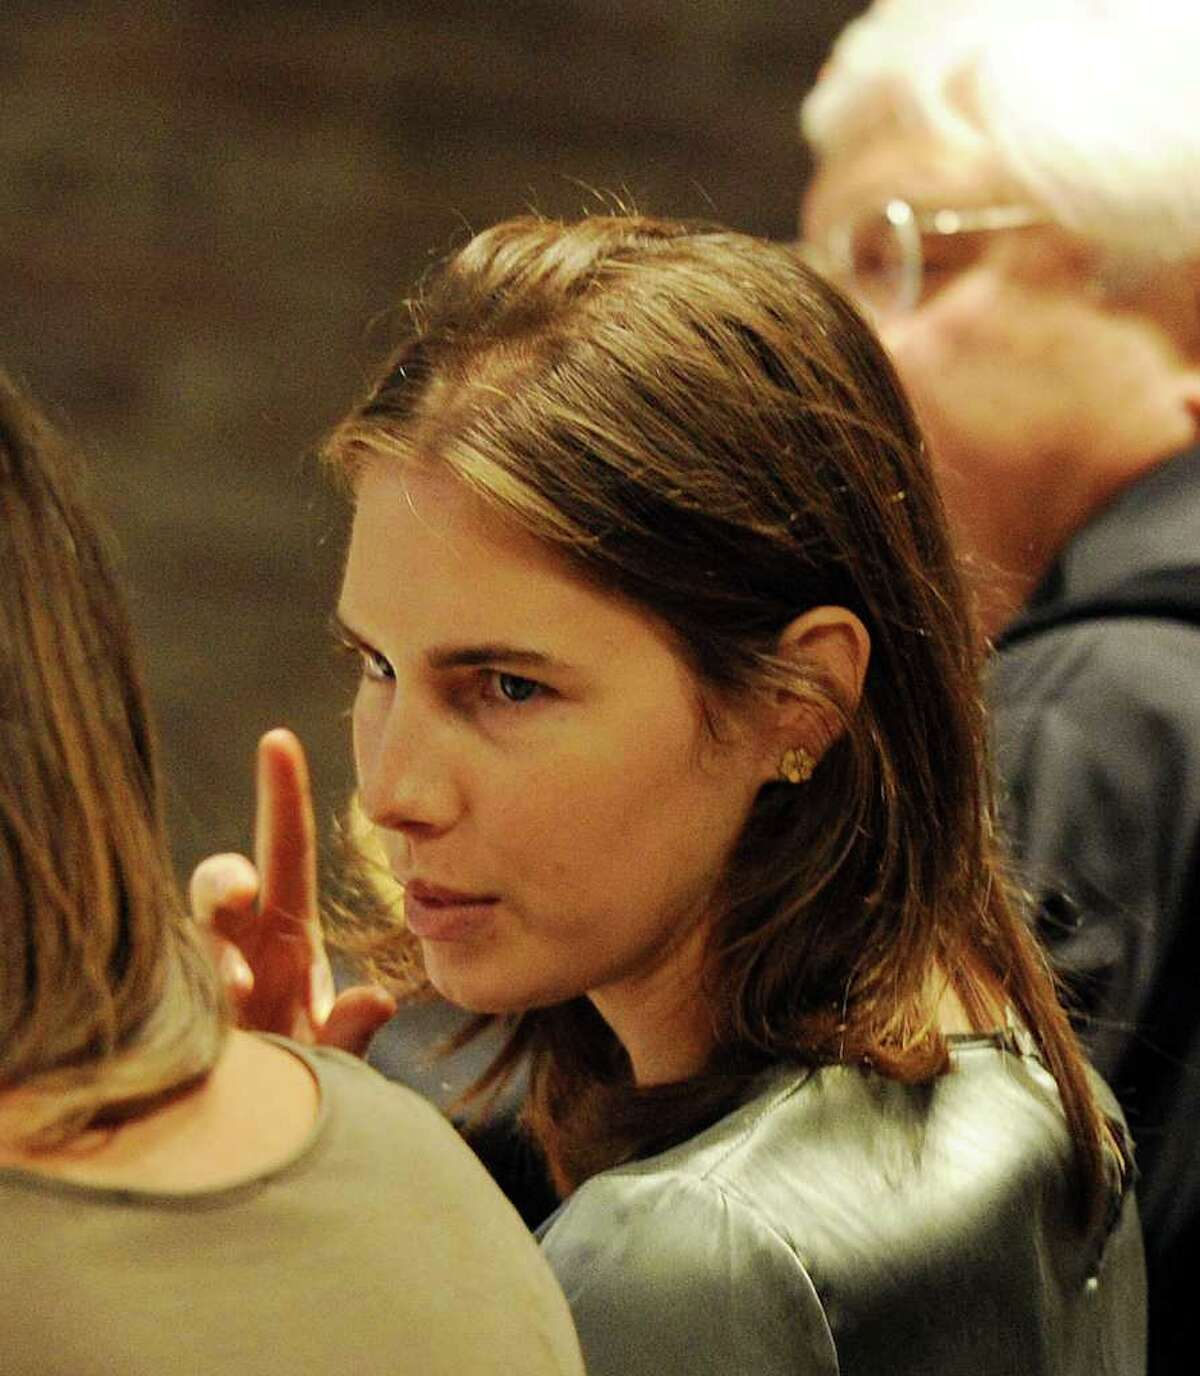 Amanda Knox attends appeal hearing at Perugia's Court of Appeal on Thursday.